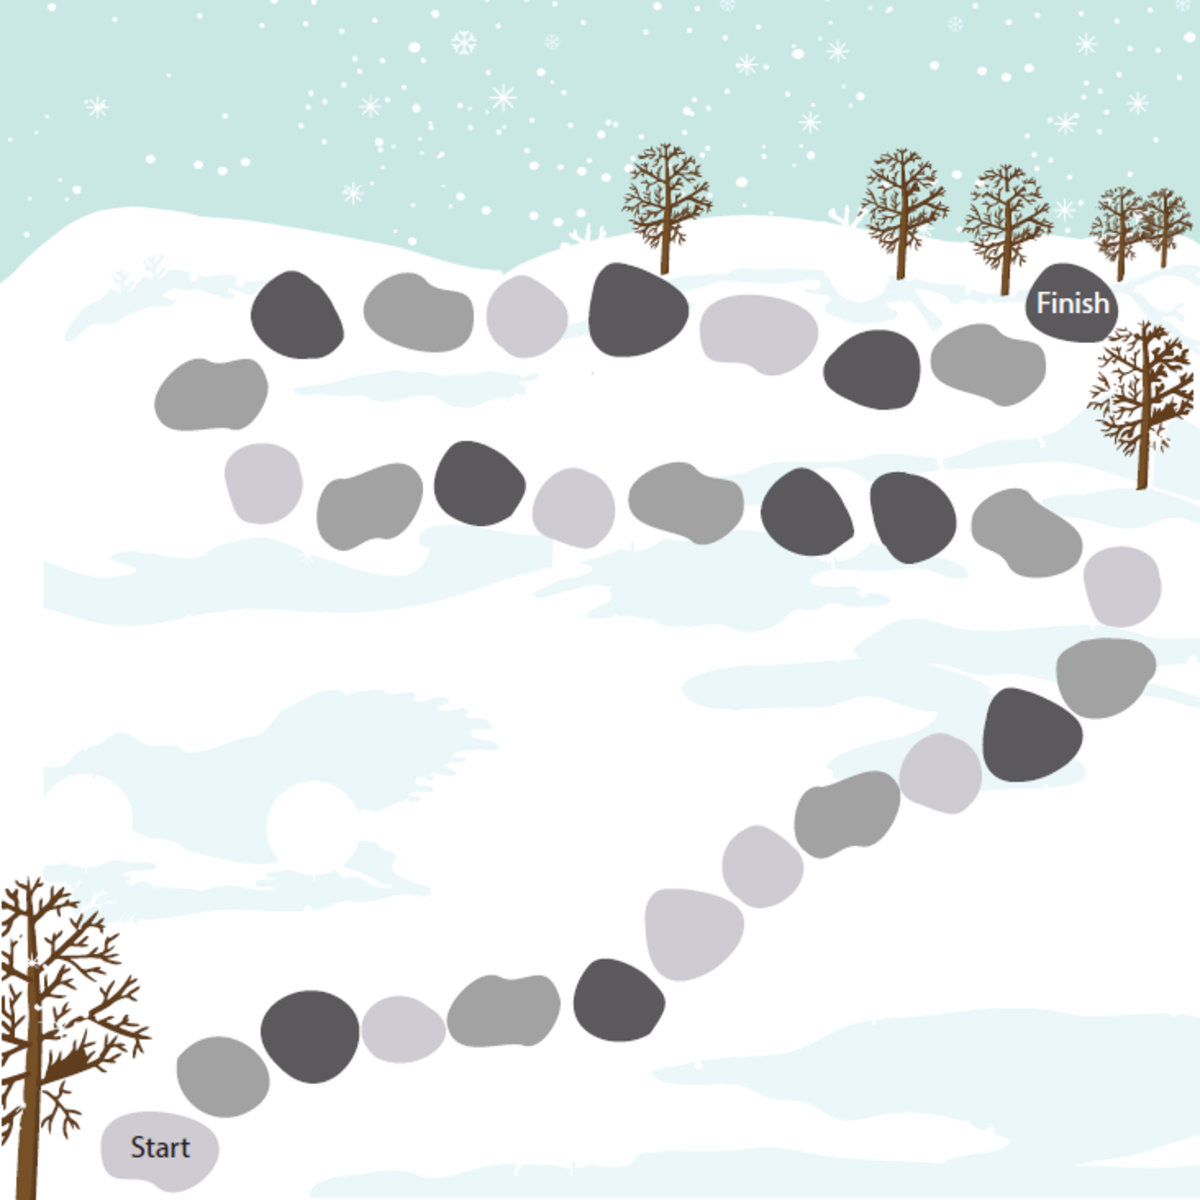 Winter-themed Candyland